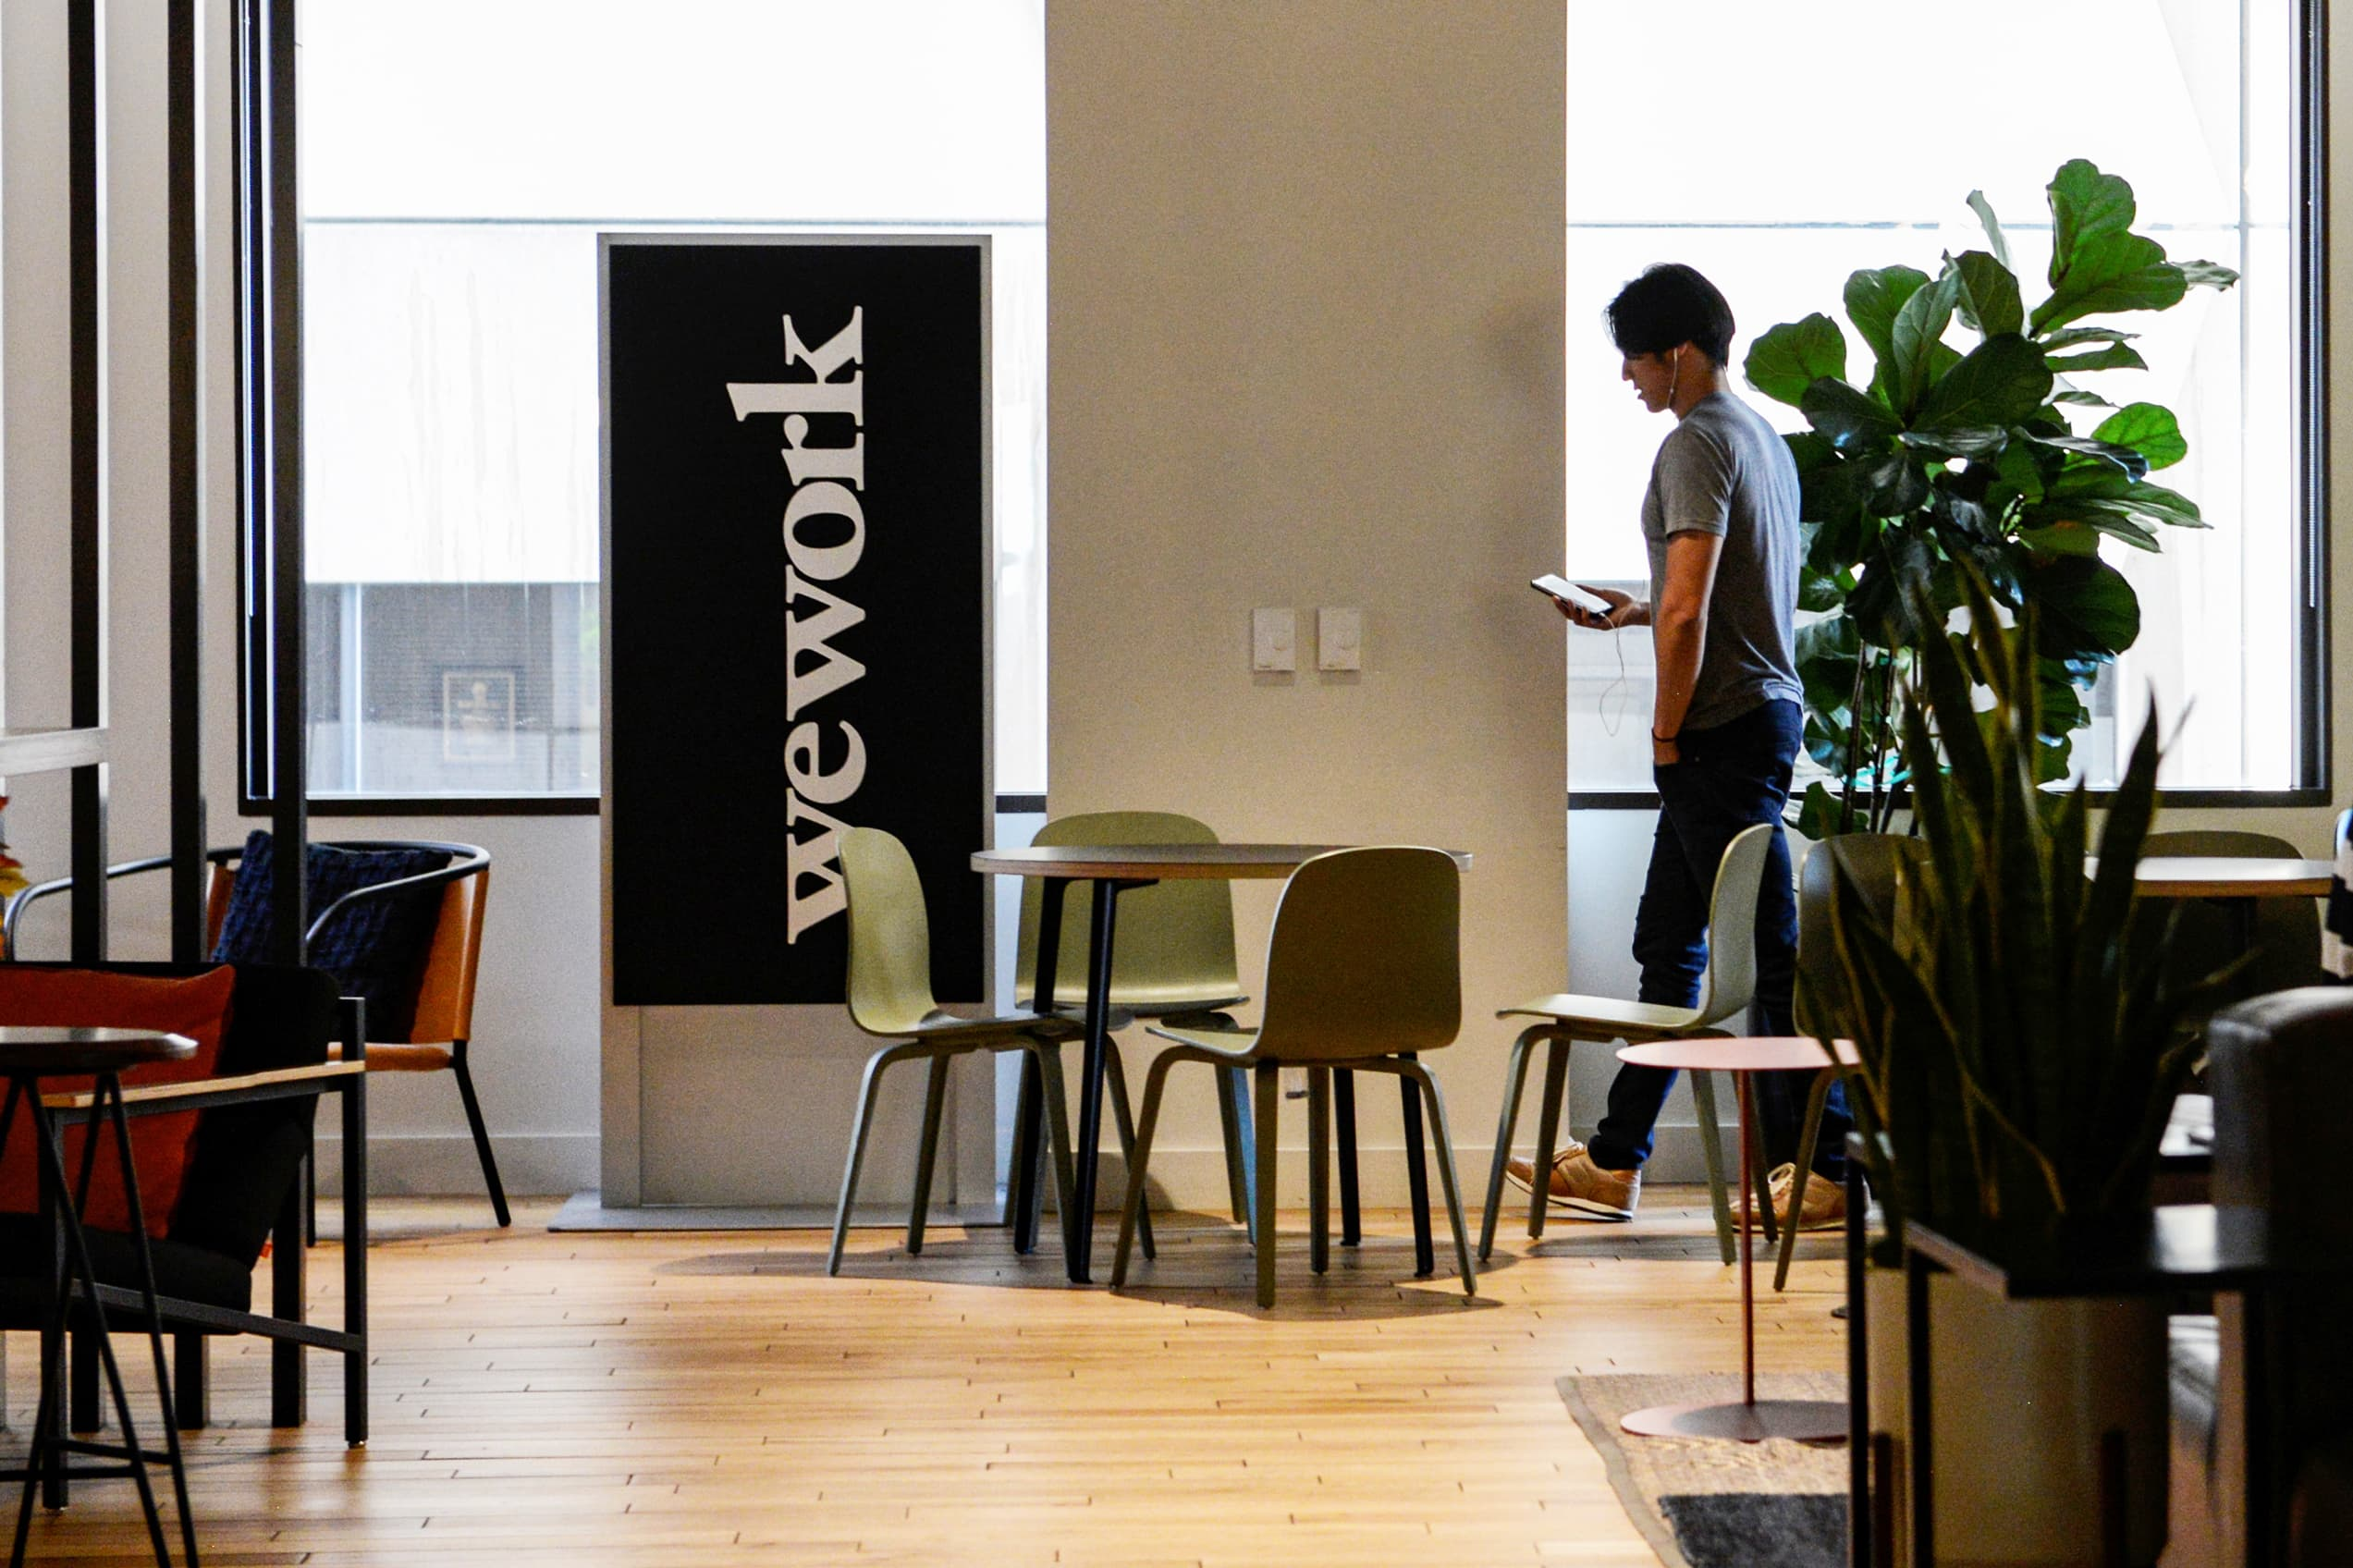 The public market showed discipline with WeWork, says Roger McNamee